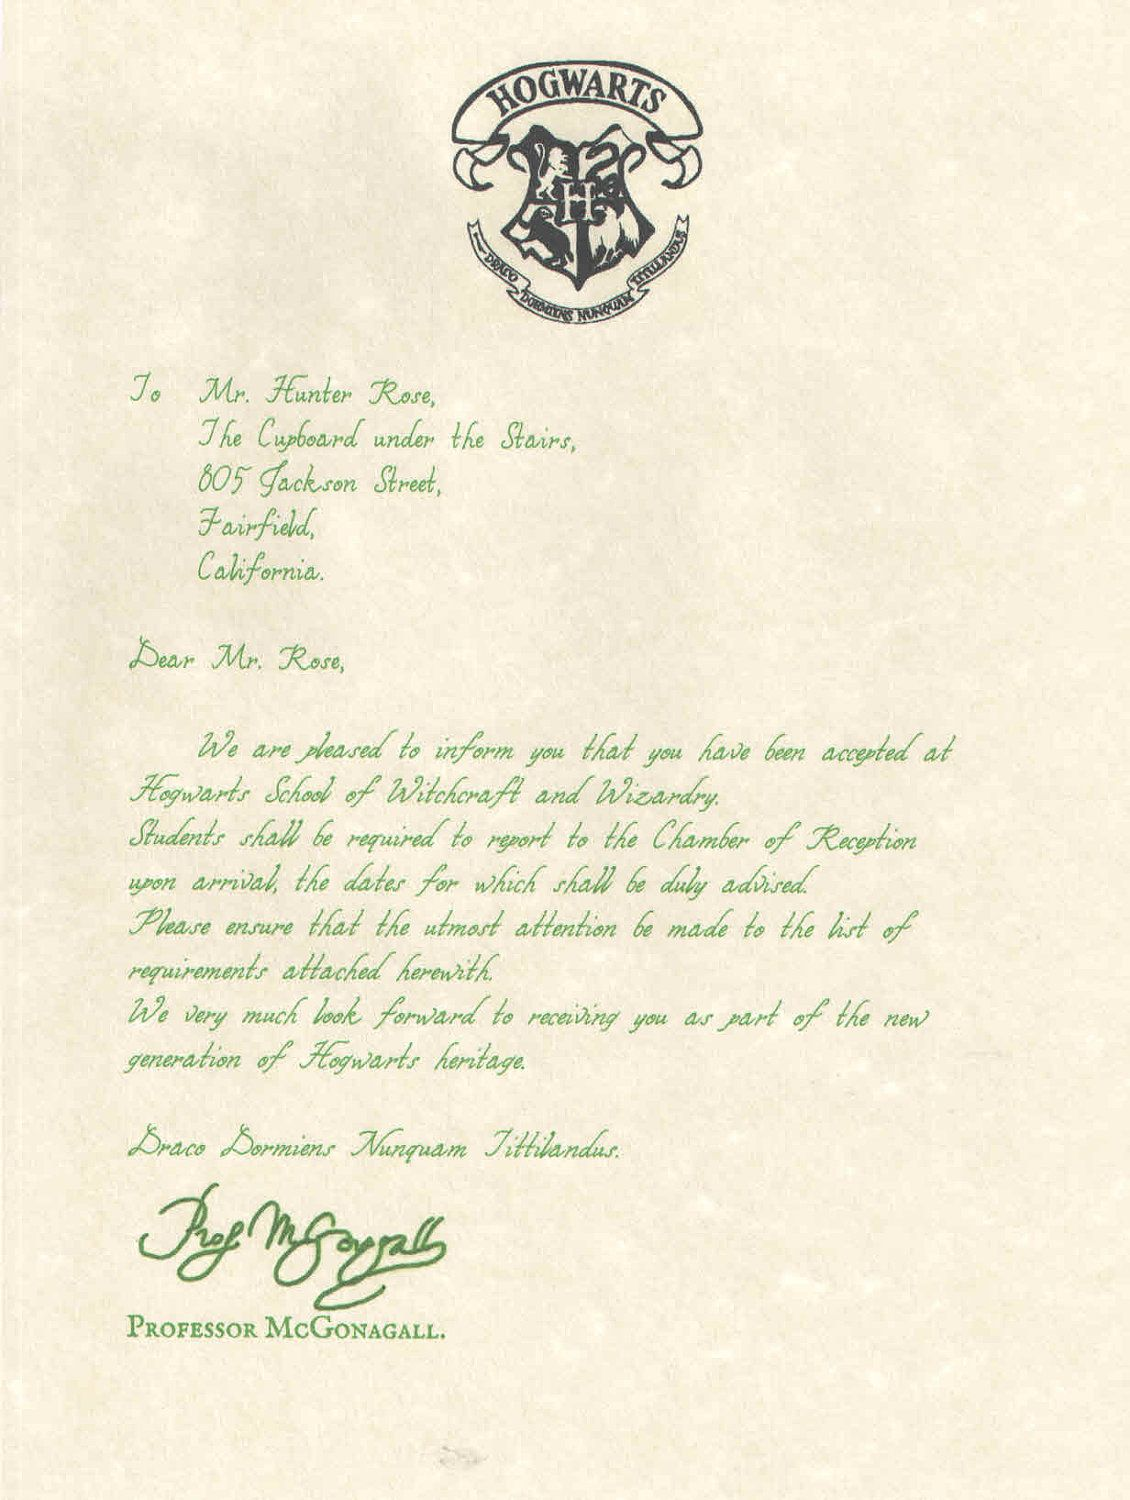 Hogwarts Acceptance Letter (Movie Version) Personalized for a